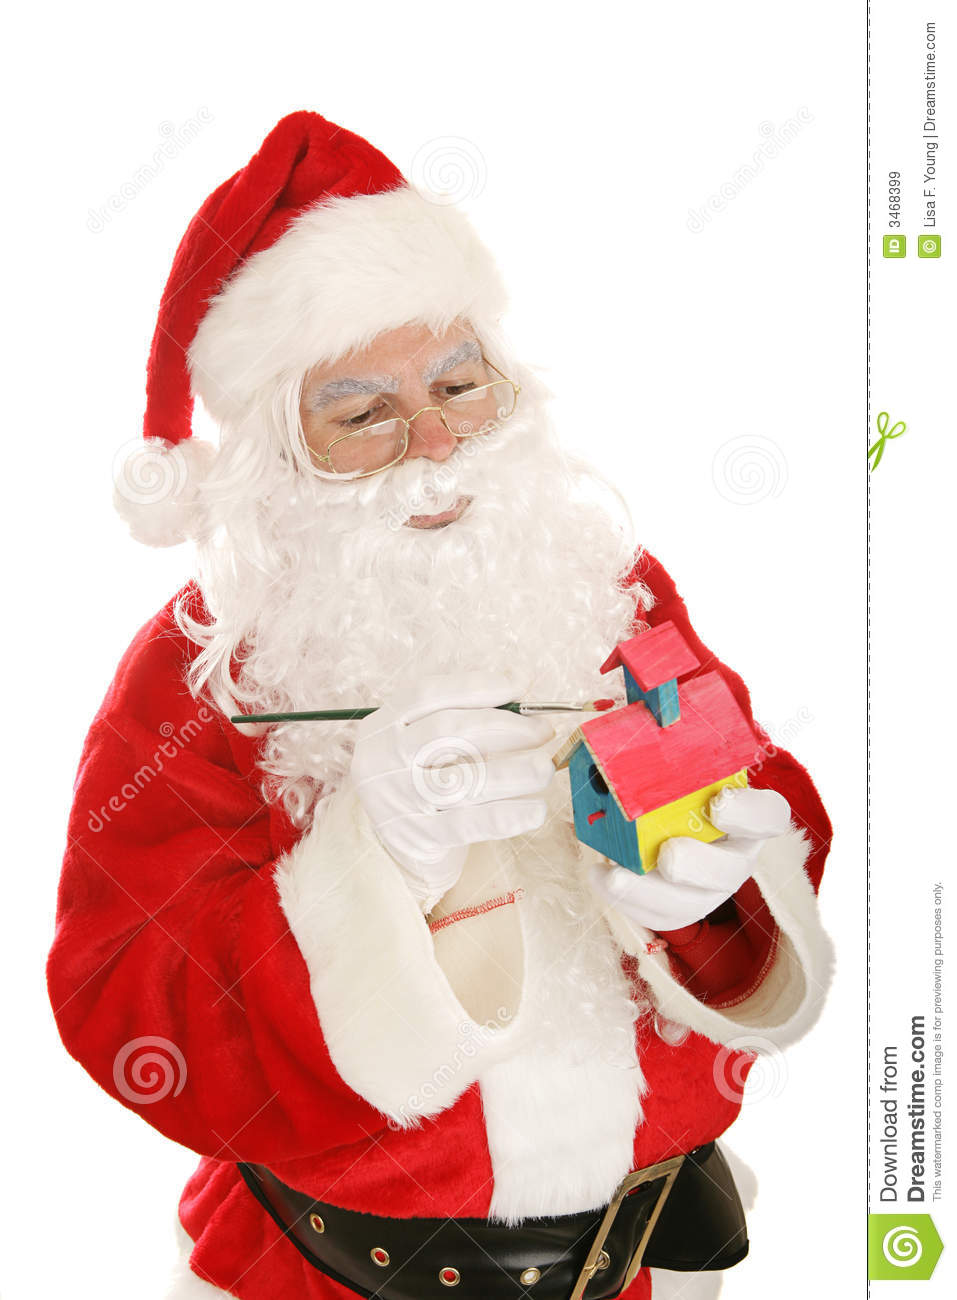 Toys From Santa : Santa making toys stock image of motion isolated